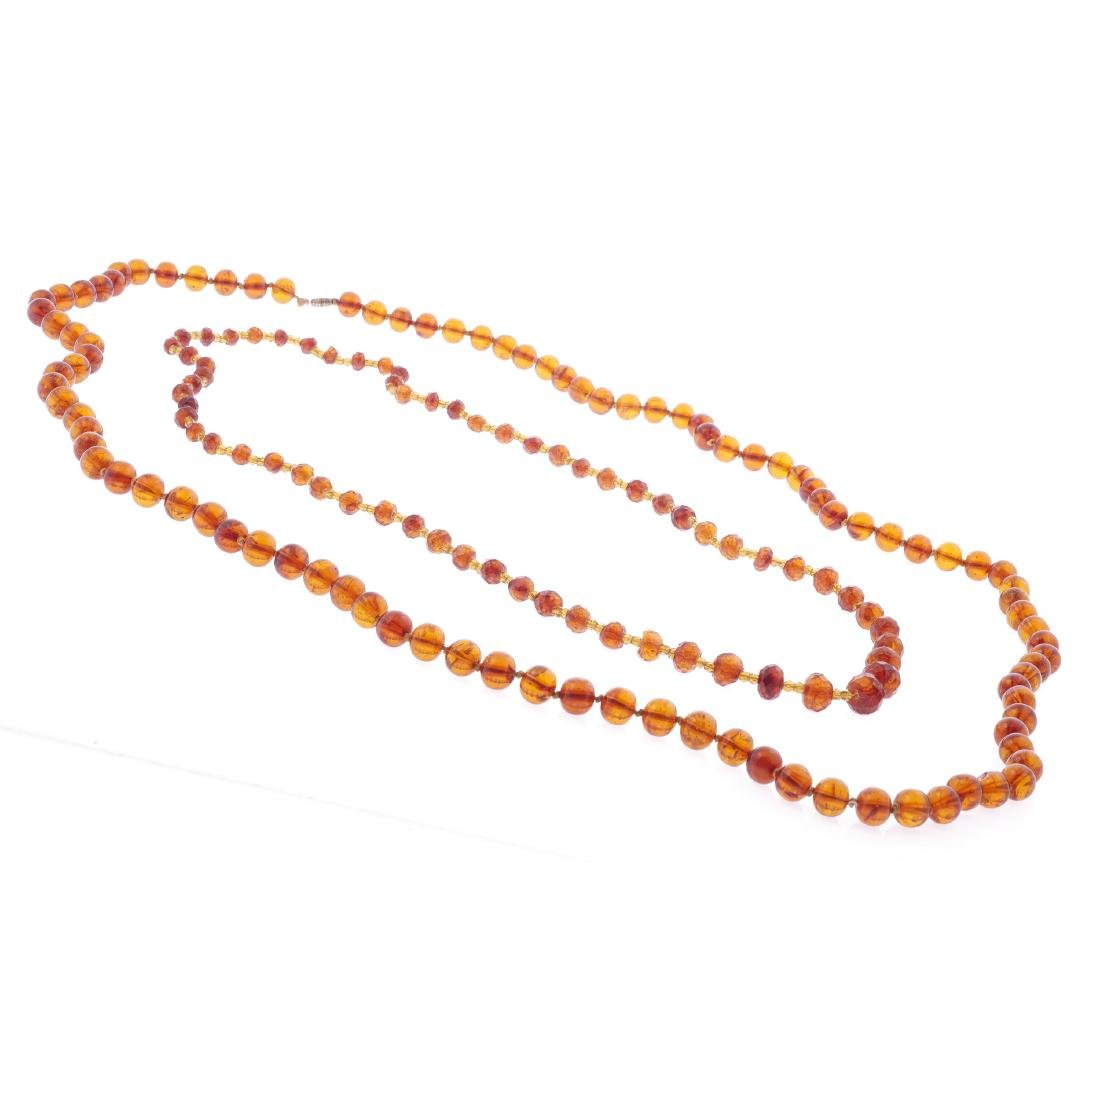 Two Chinese amber necklaces